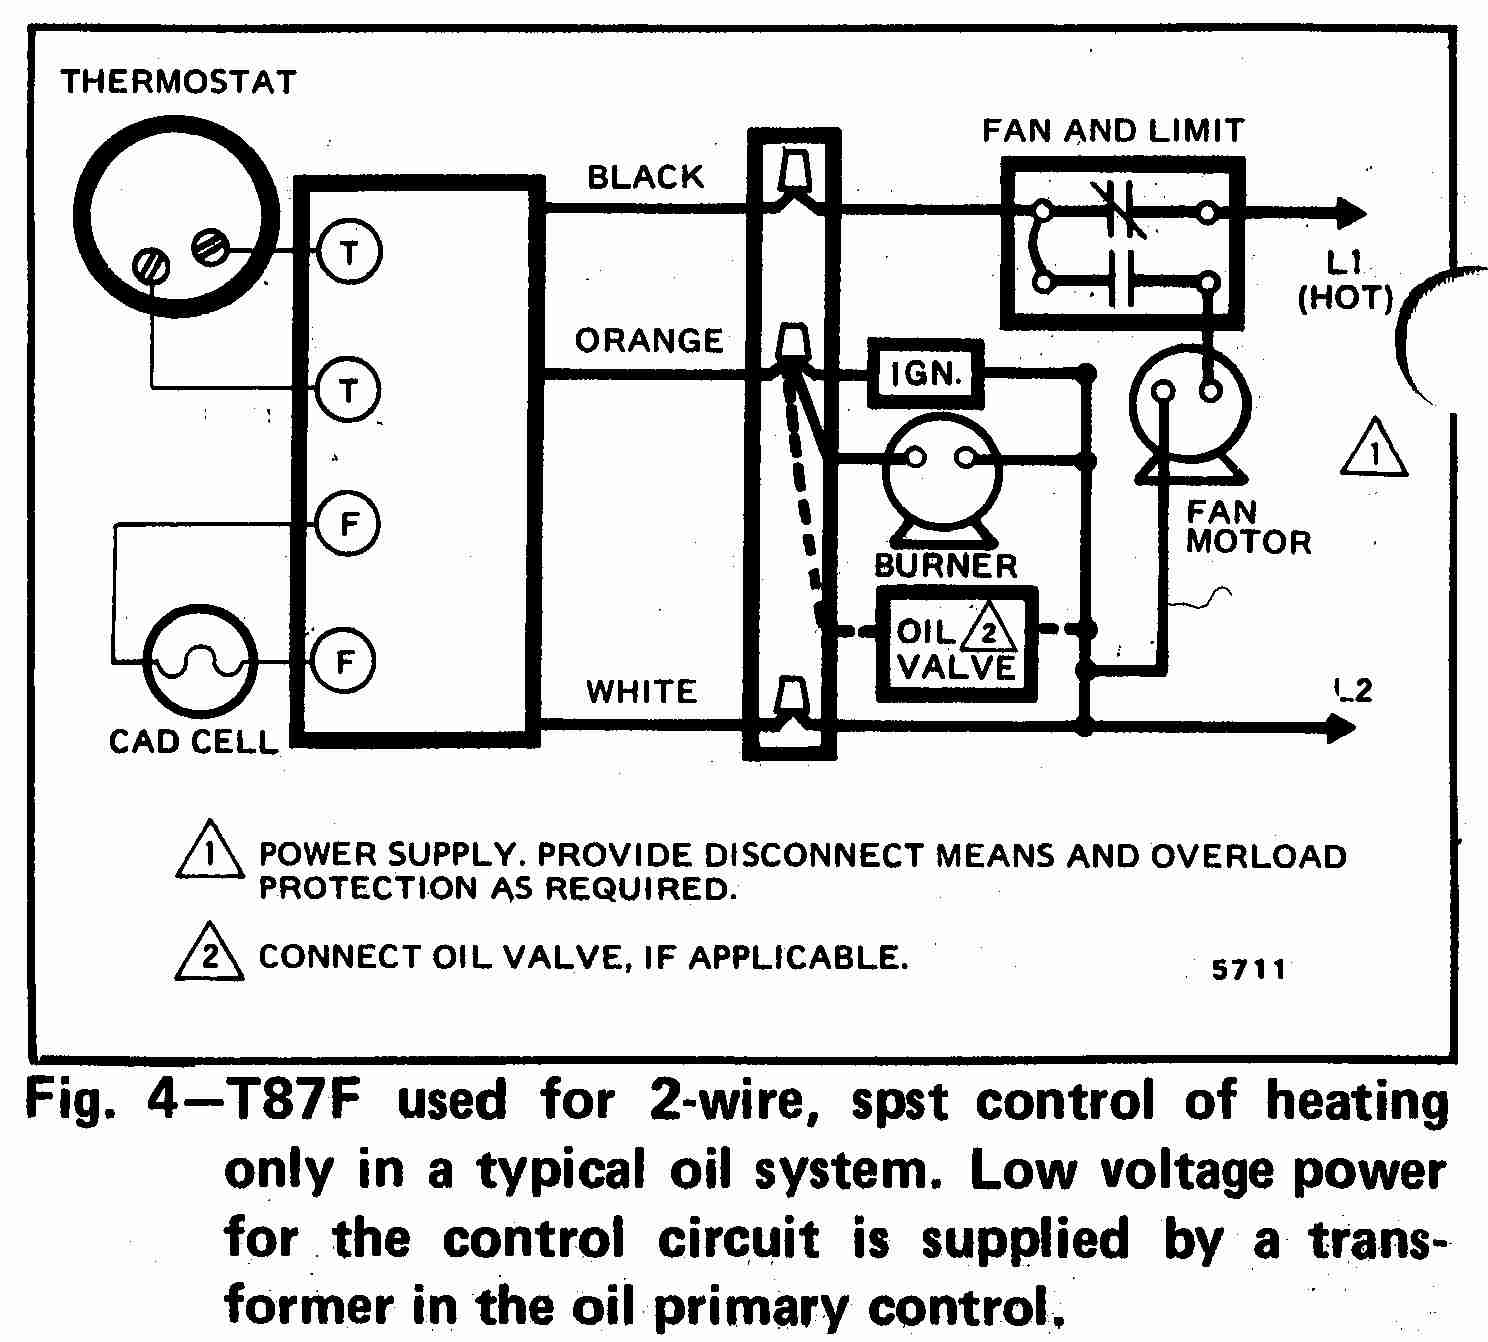 Room thermostat wiring diagrams for HVAC systems on motor schematics, electrical schematics, engineering schematics, electronics schematics, transformer schematics, ford diagrams schematics, computer schematics, ignition schematics, plumbing schematics, ductwork schematics, design schematics, generator schematics, circuit schematics, engine schematics, wire schematics, amplifier schematics, piping schematics, tube amp schematics, ecu schematics, transmission schematics,